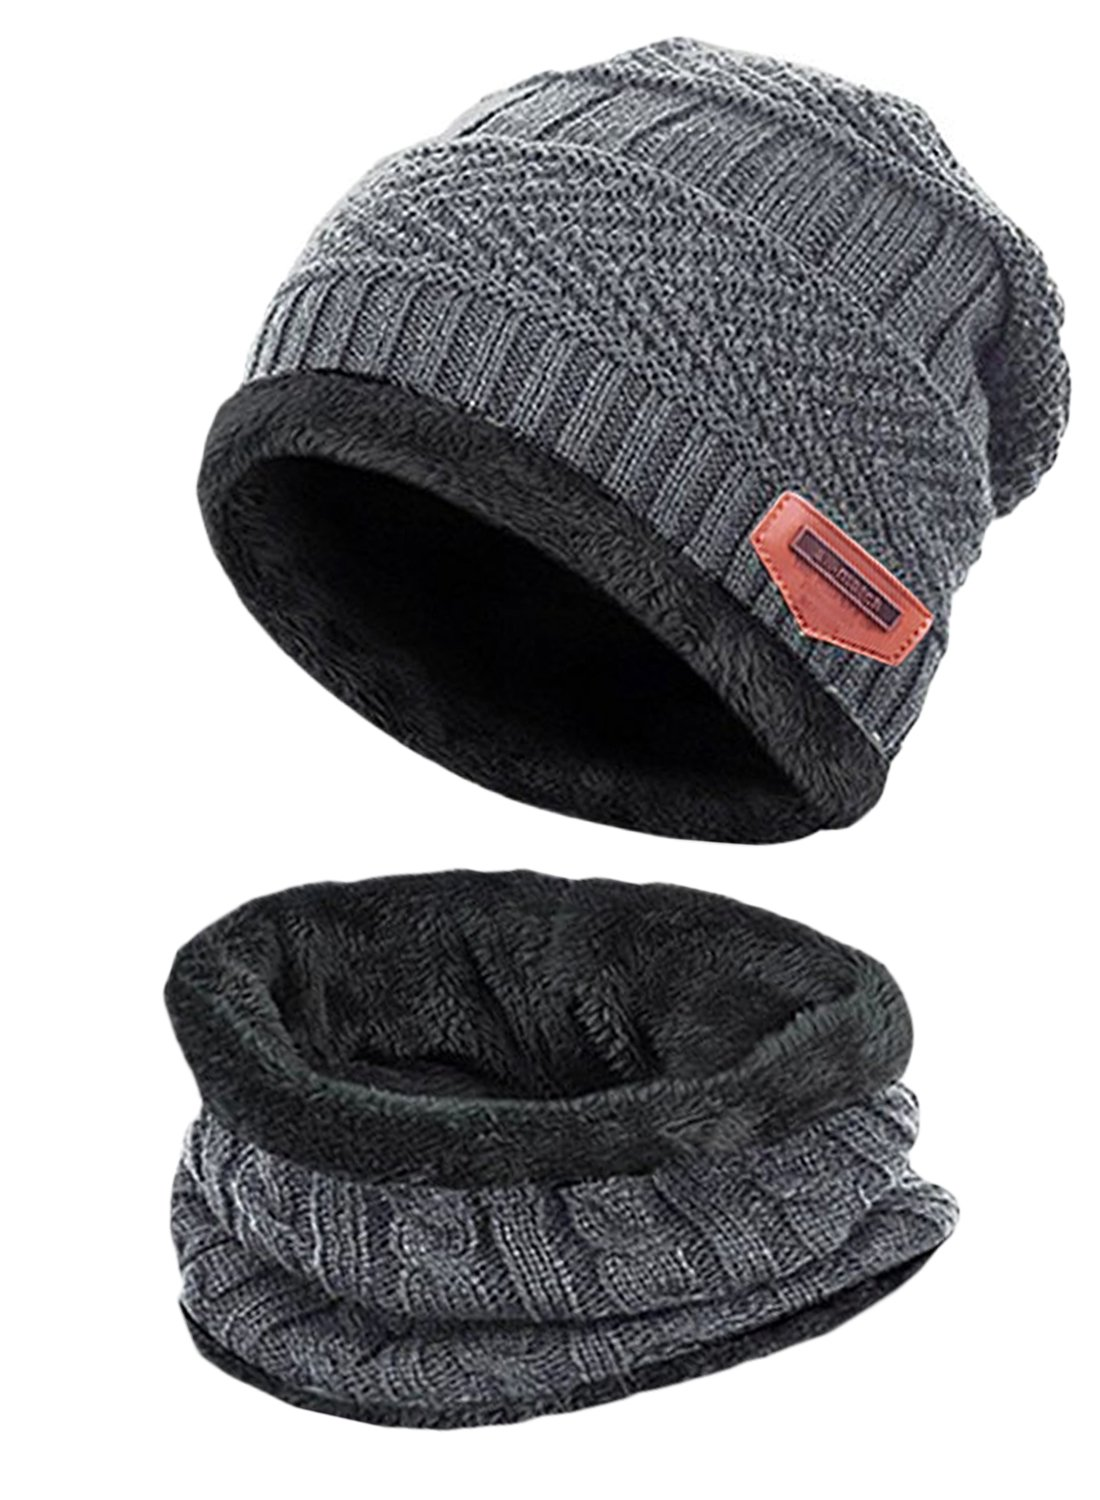 T-wilker 2 Pcs Kids Winter Knitted Hats + Scarf Set Soft Stretch Cable Warm Fleece lining Cap for 5-14 Year Old Boys Girls (Grey)